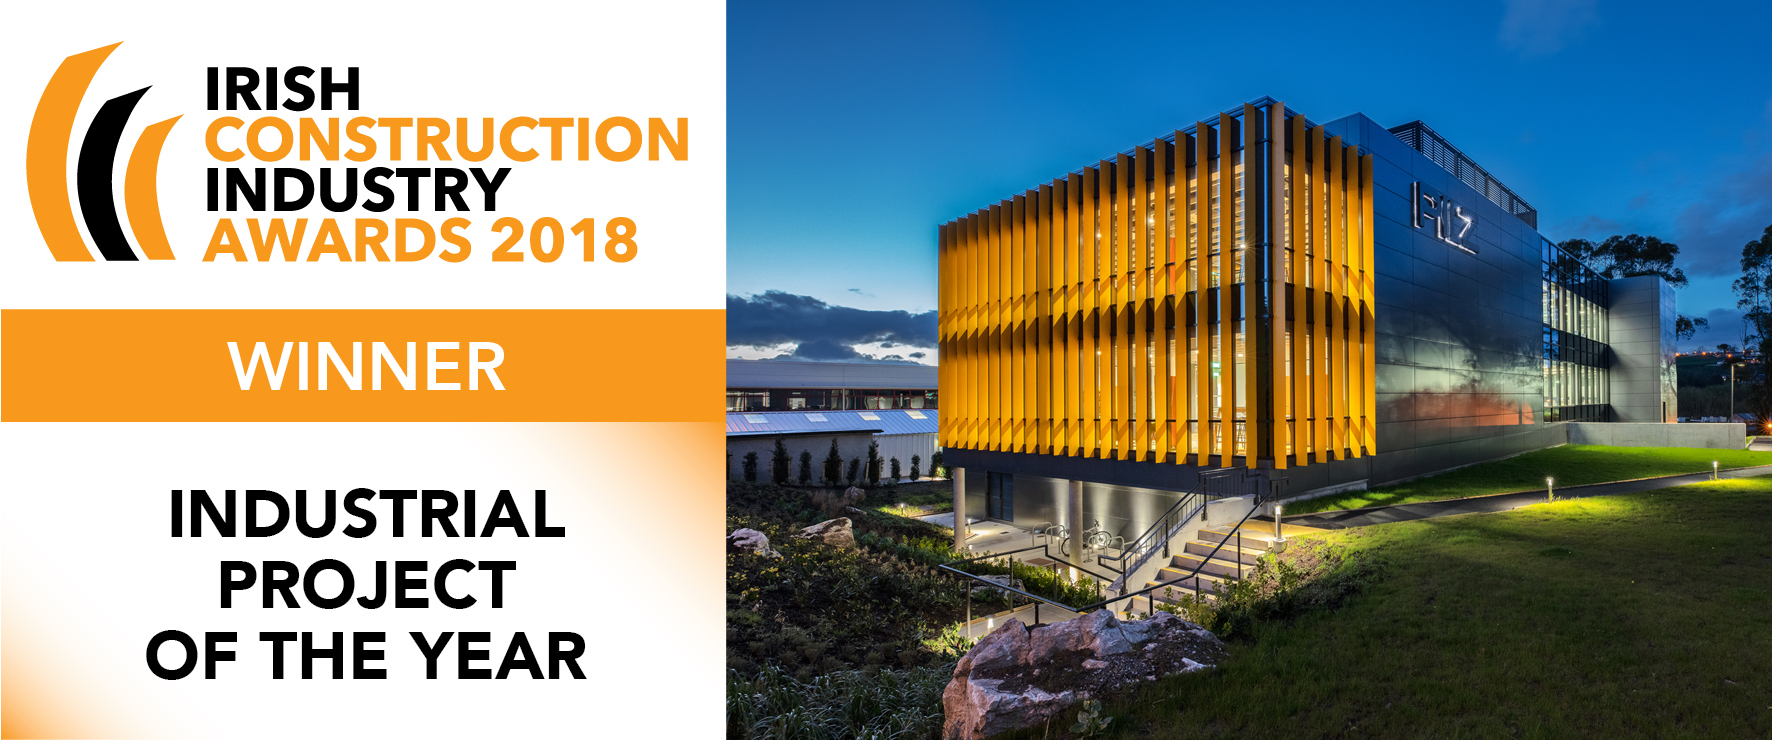 Irish Construction Industry Awards 2018 - Winner - Industrial Project of the Year